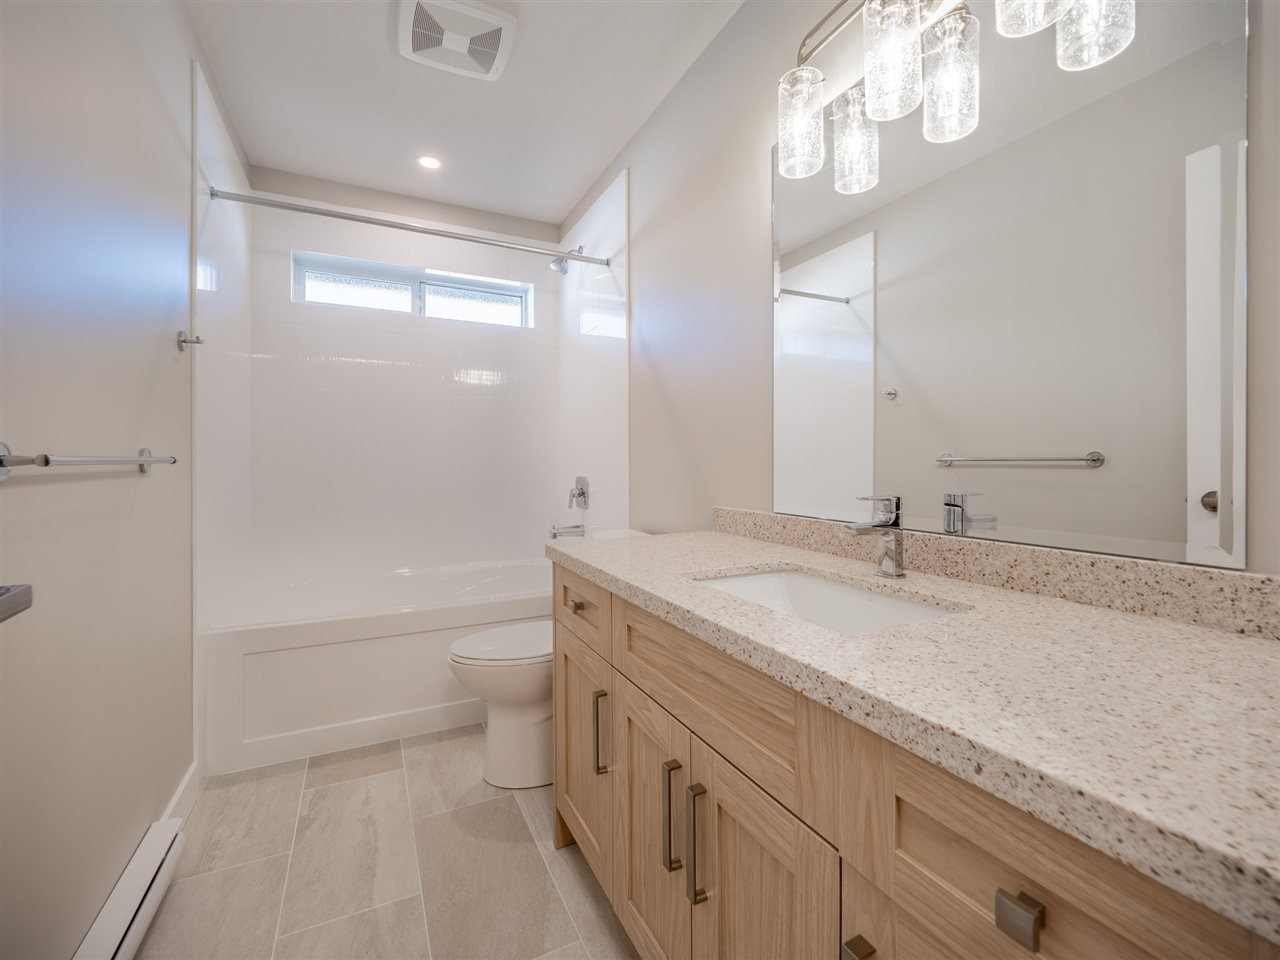 """Photo 19: Photos: 5634 KINGBIRD Crescent in Sechelt: Sechelt District House for sale in """"SilverStone Heights Phase2"""" (Sunshine Coast)  : MLS®# R2466073"""